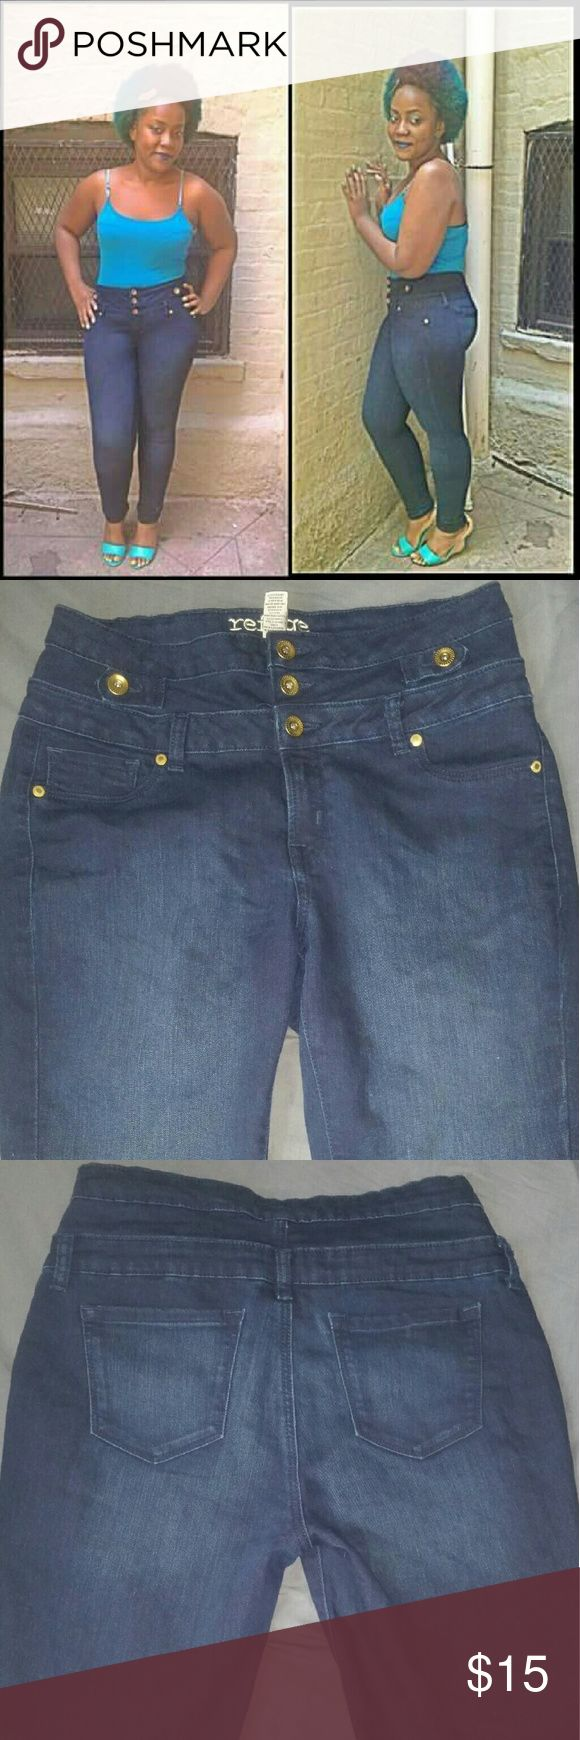 High Waisted Denim Blue Jeans!!! -These chique denim high waisted jeans are very comfortable!! -Only worn twice because I gained weight after lol -Very cute with any type of flats, high heels, or sneakers... -Size 12 (true to size ) Charlotte Russe Jeans Skinny